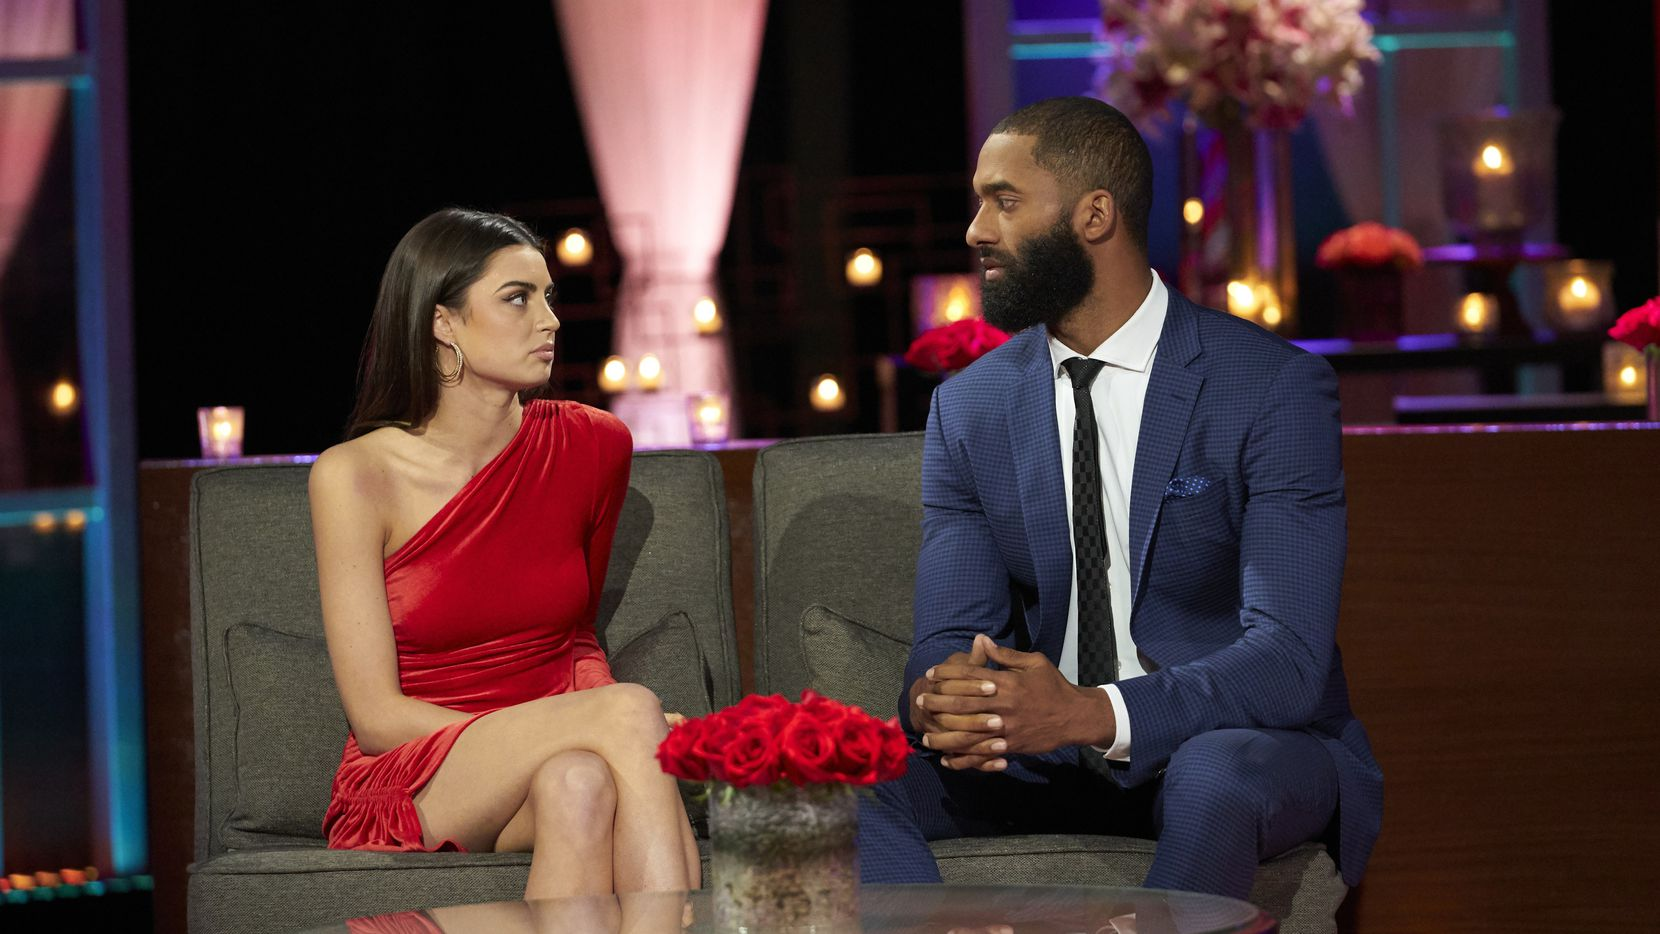 Rachael Kirkconnell and Matt James talk about their Bachelor romance and breakup on After the Final Rose.